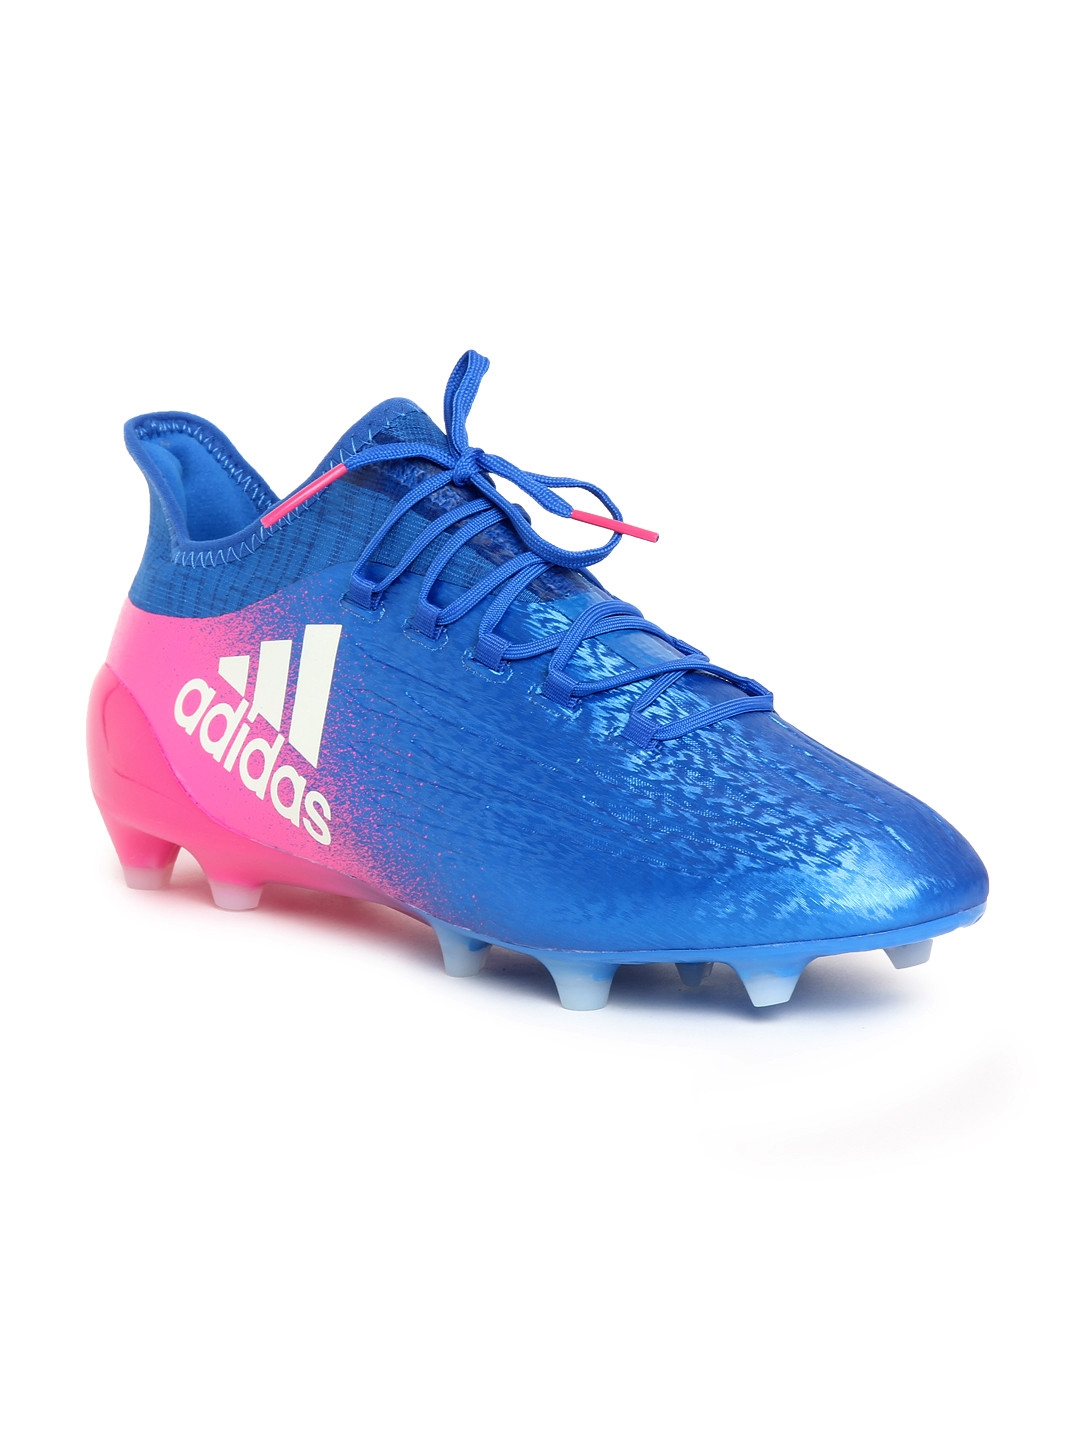 b165d4a594f ADIDAS Men Blue   Pink X 16.1 FG Football Shoes. This product is already at  its best price